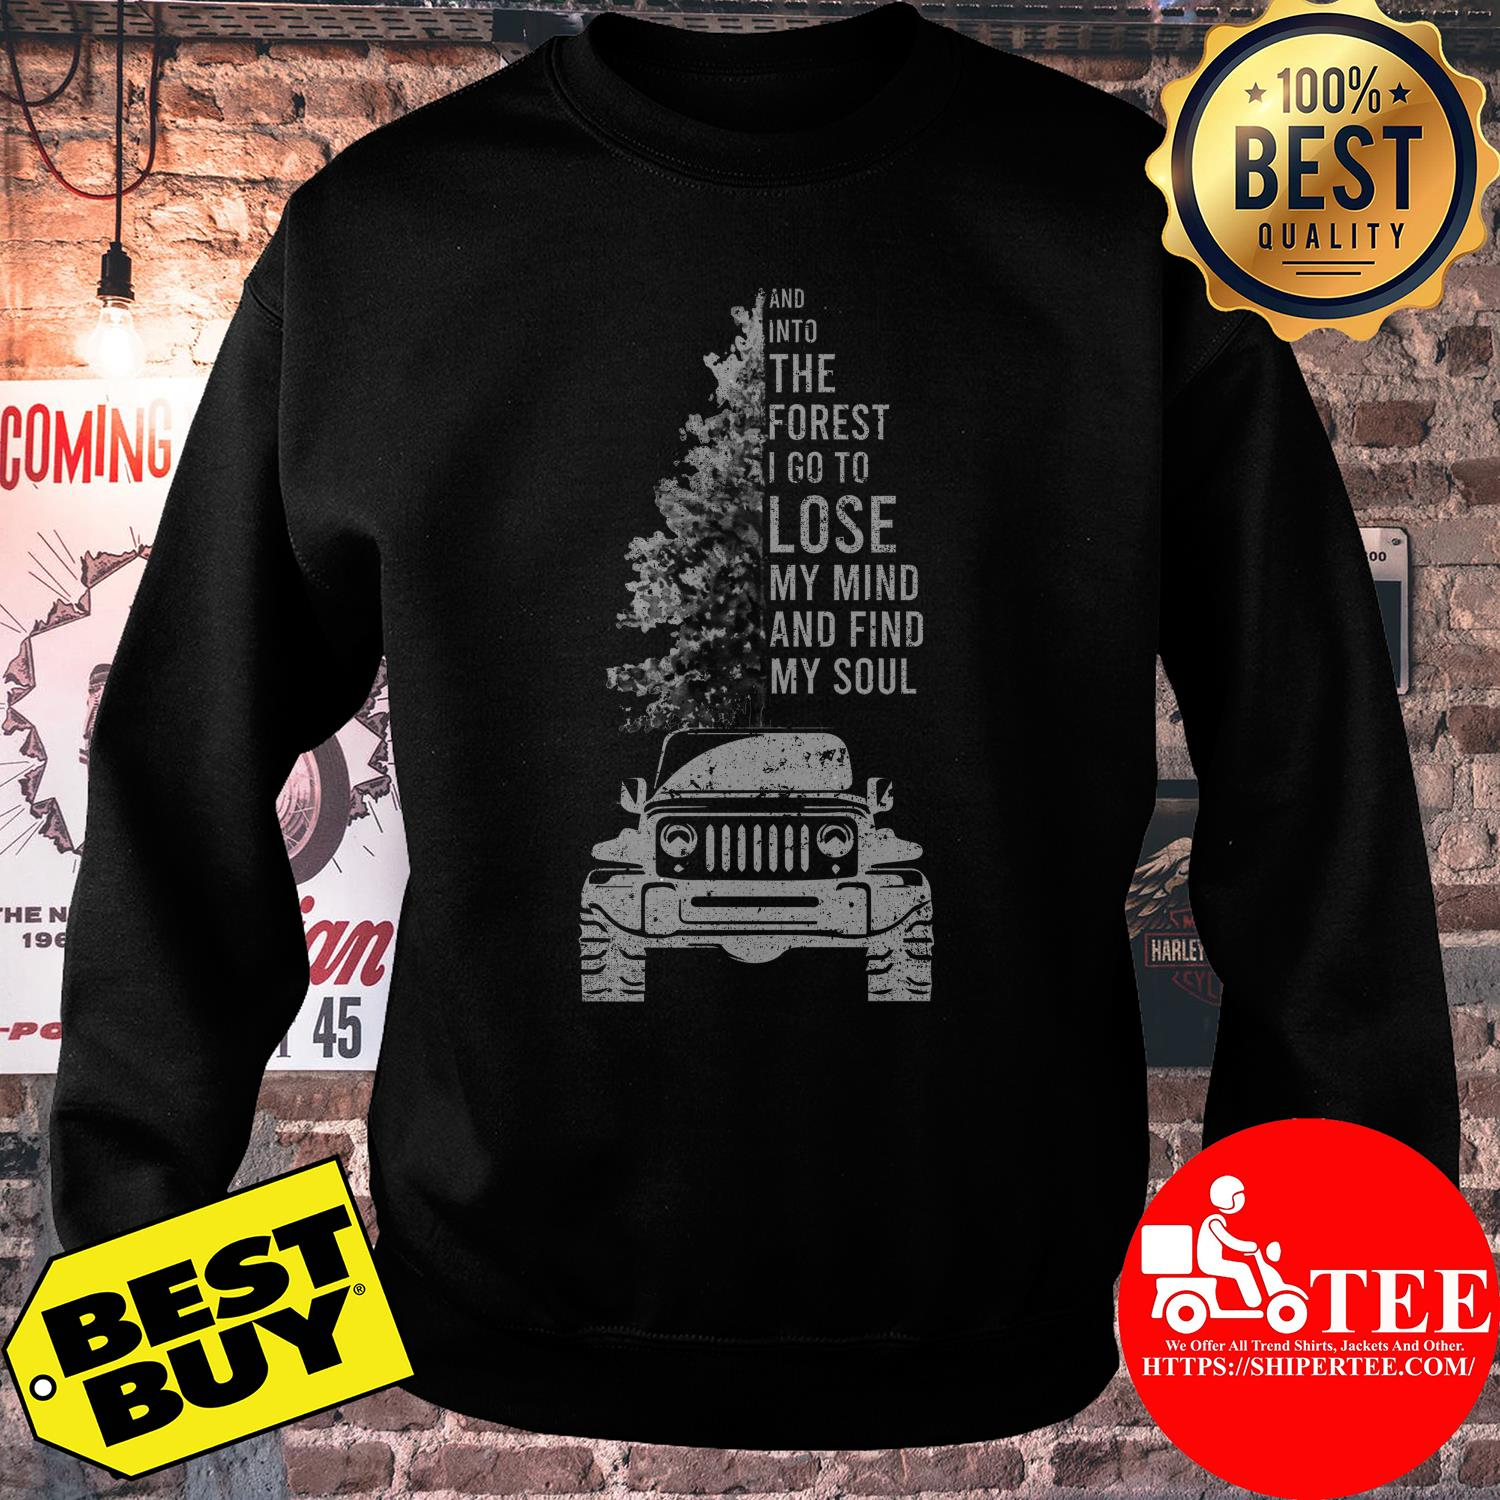 Trees and into the forest I go to lose my mind and find my soul sweatshirt